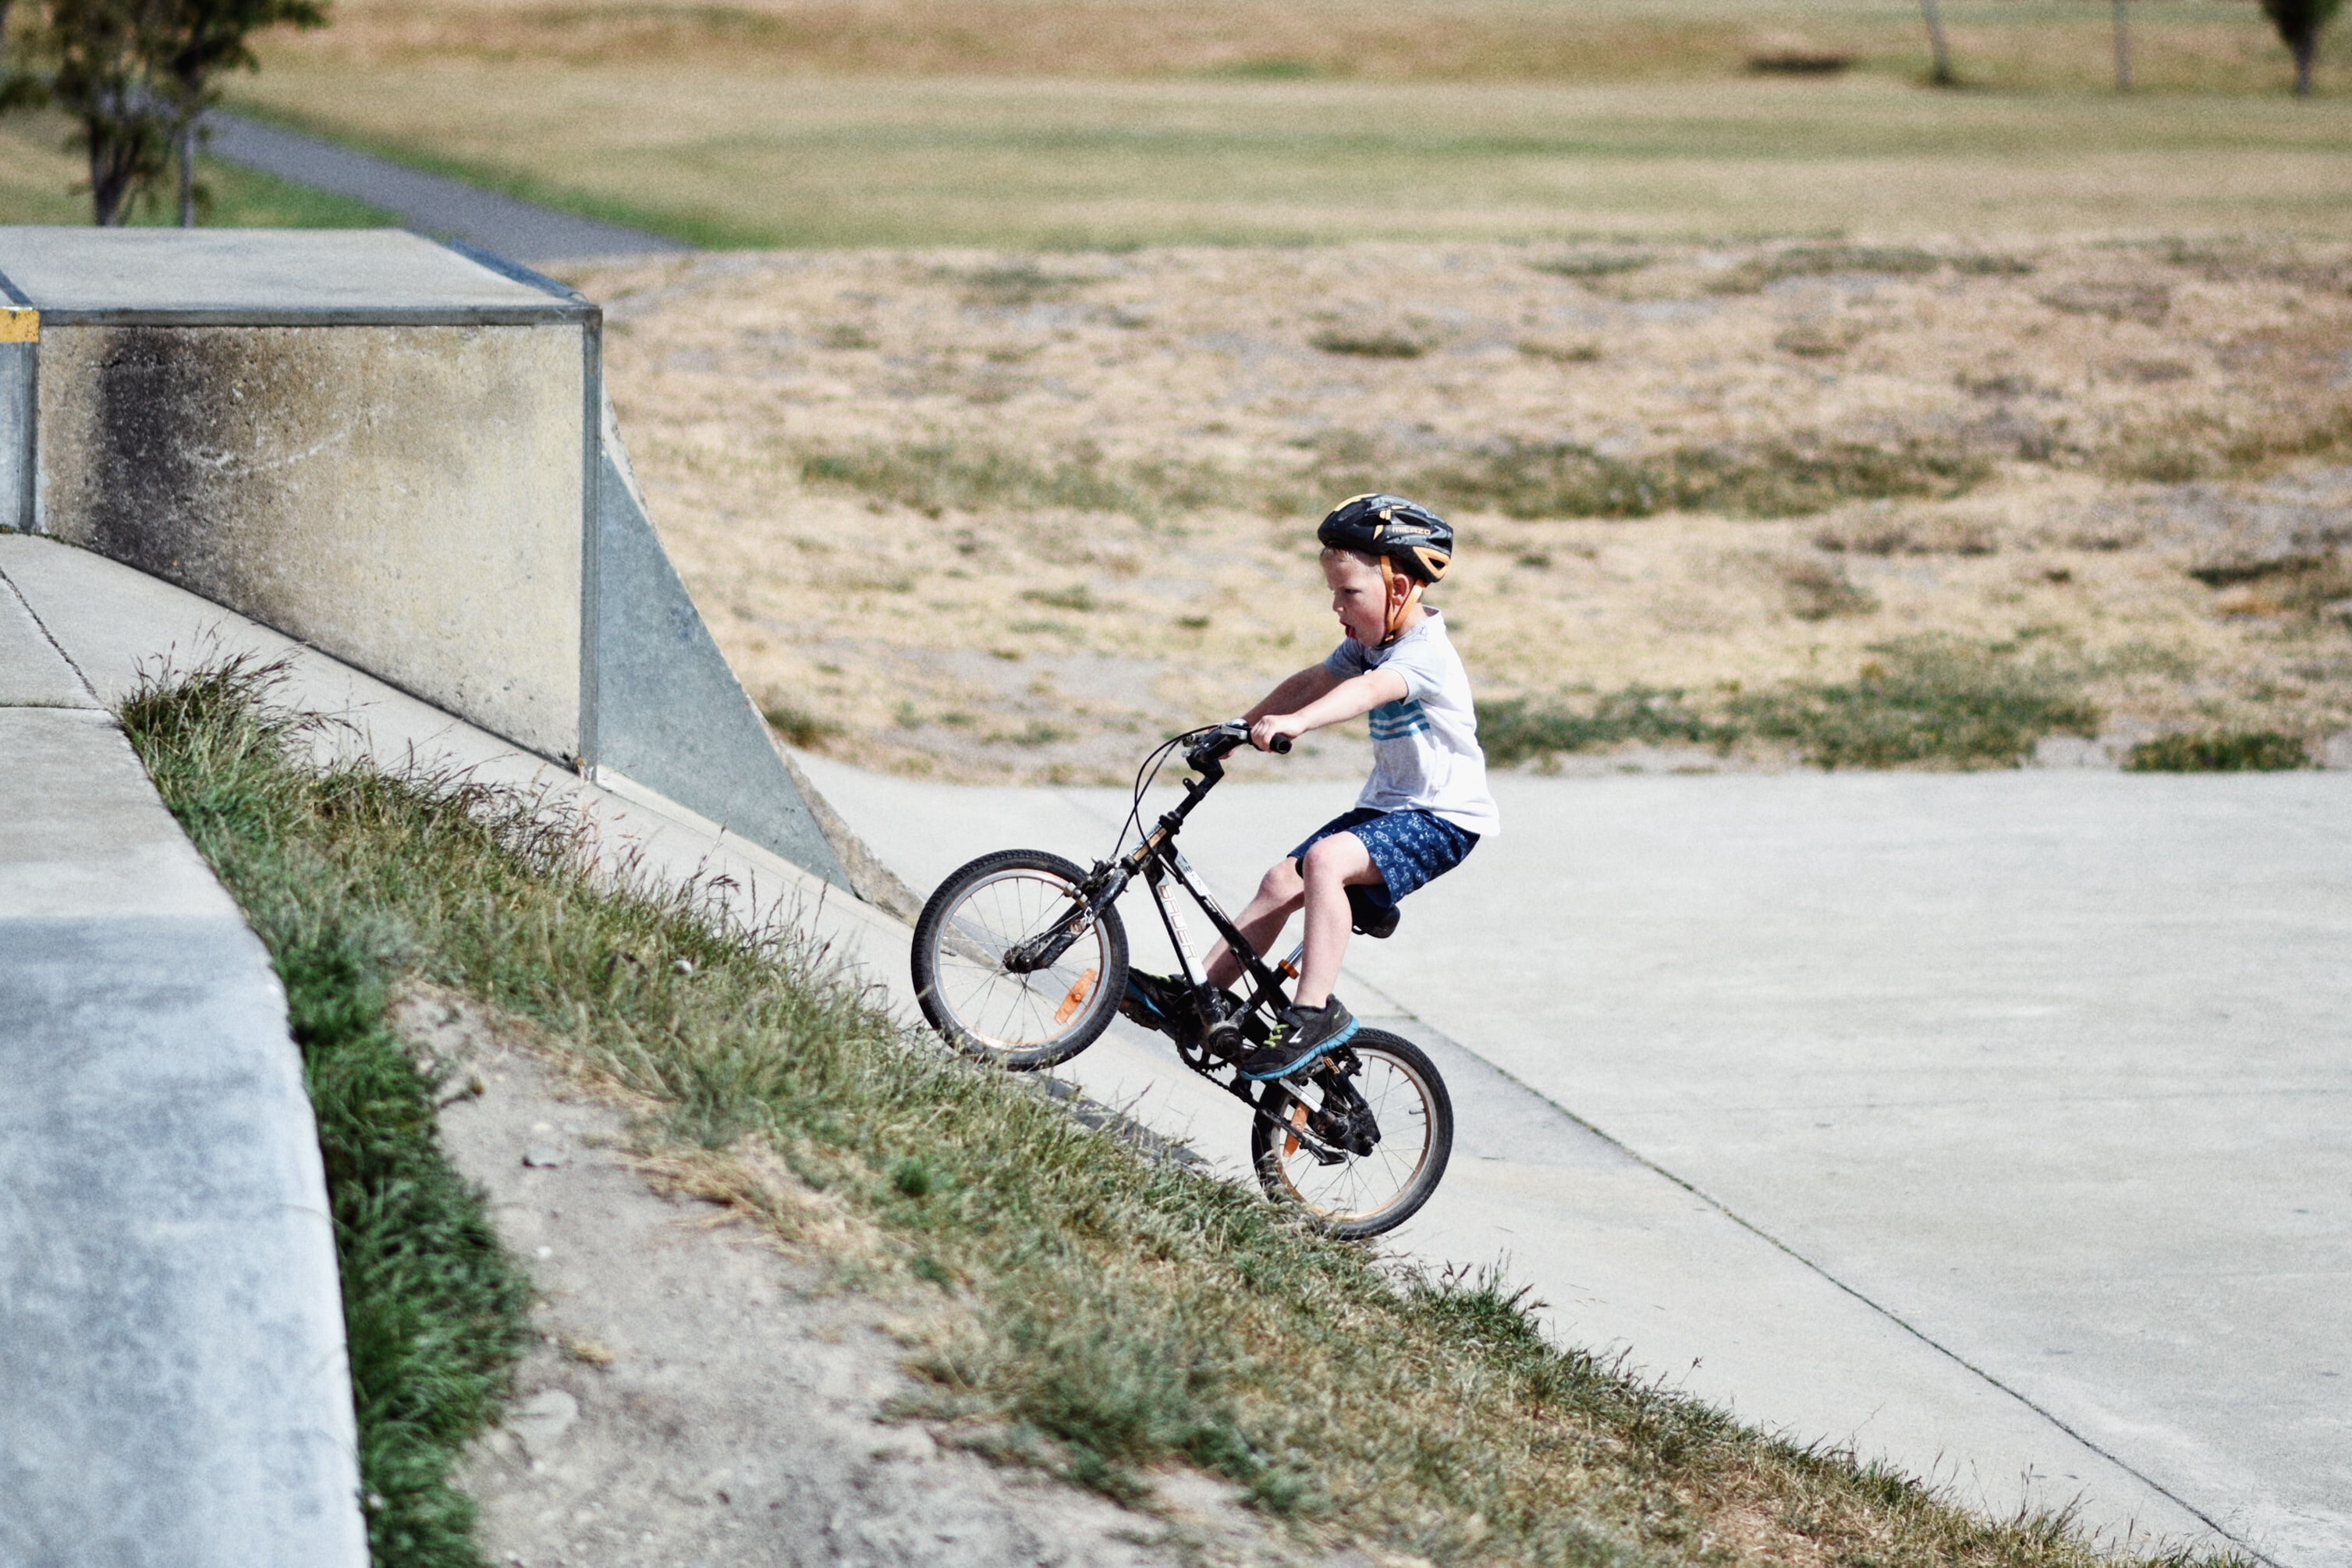 Child on bicycle in helmet on concrete ramp